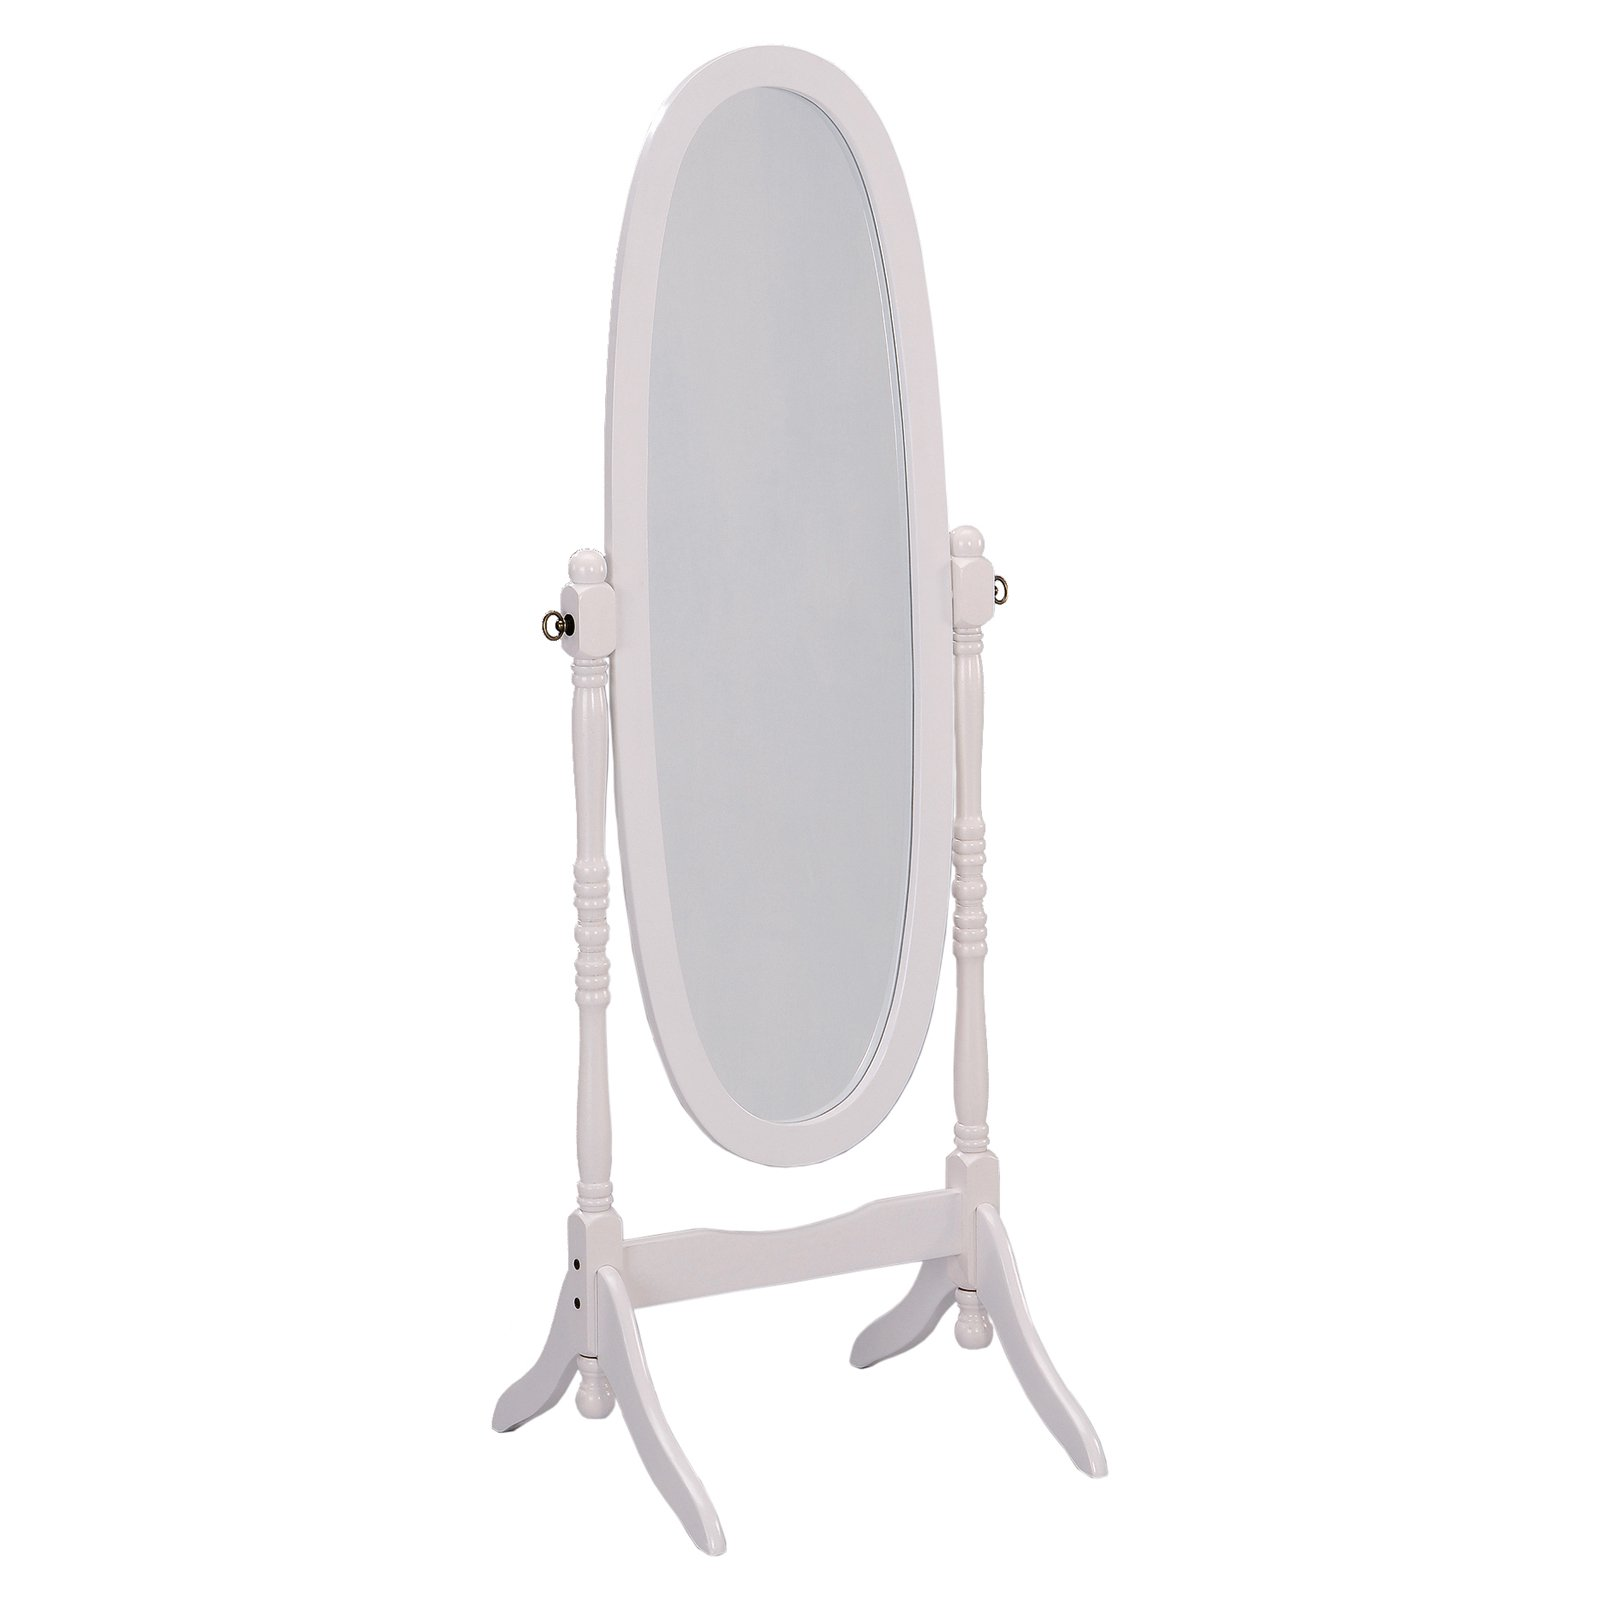 Standing Mirror Ore International White Finish Oval Wood Cheval Floor Standing Mirror 59 5